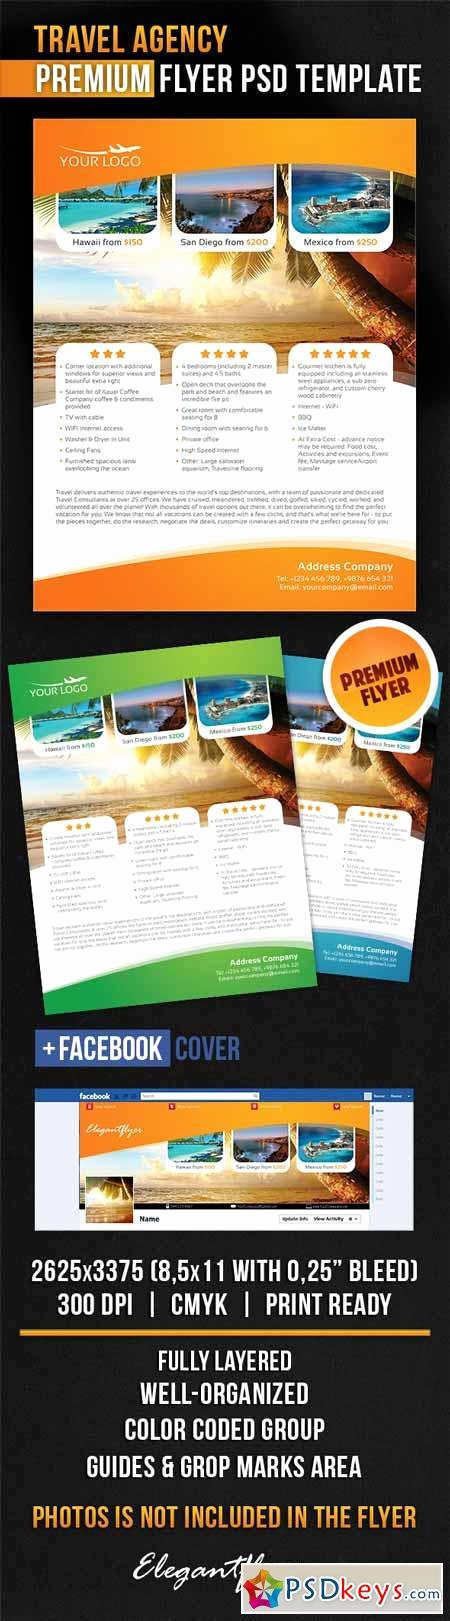 Travel Agency – Flyer Psd Template Cover Free